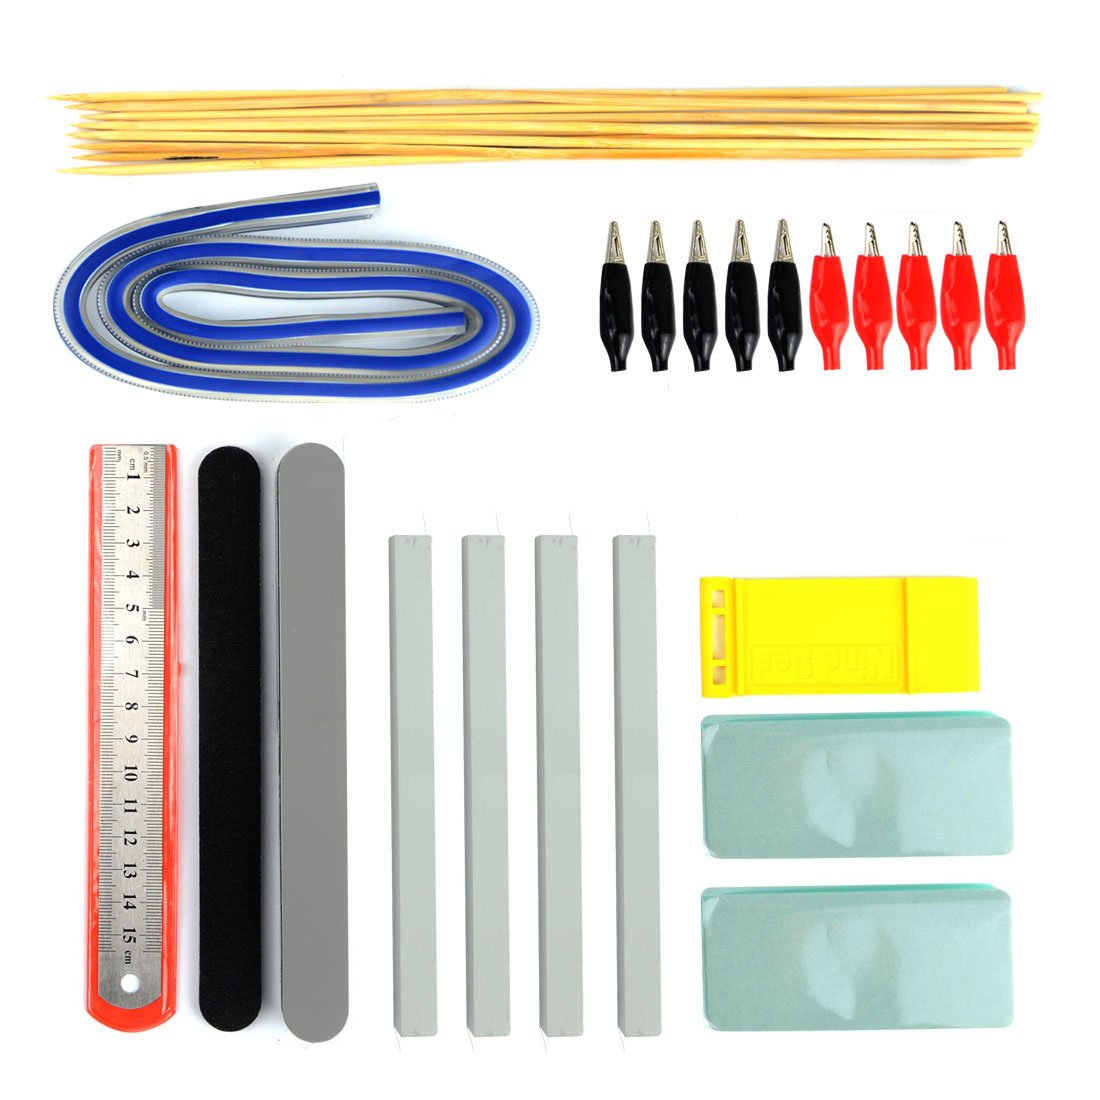 BXQINLENX Professional 56 PCS Gundam Model Tools Kit Modeler Basic Tools Craft Set Hobby Building Tools Kit for Gundam Car Model Building Repairing and Fixing(H) by BXQINLENX (Image #3)